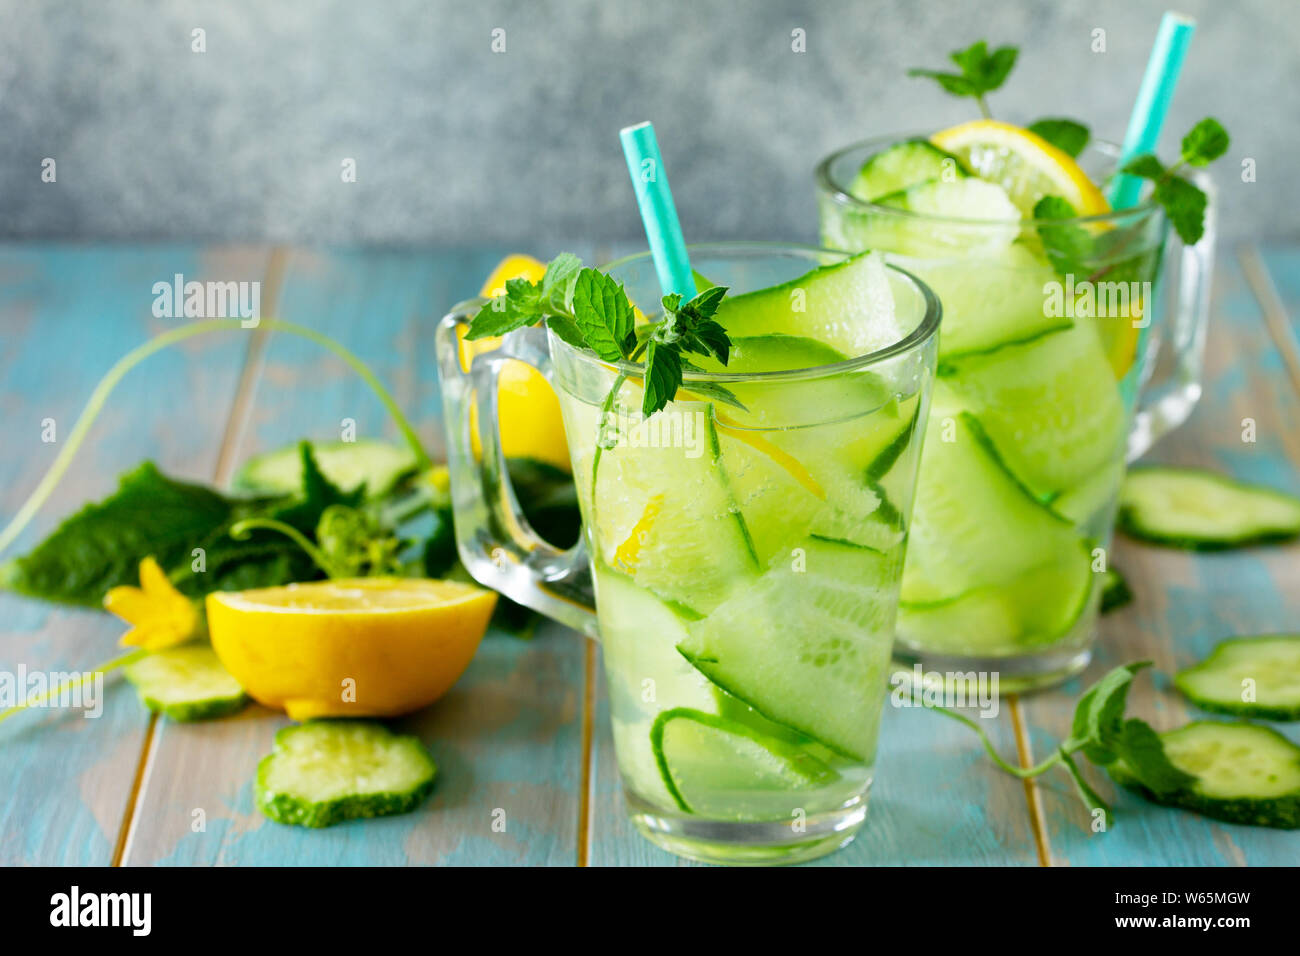 Glasses with fresh organic Cold and refreshing infused detox water with lemon and cucumber on wooden table. Copy space for your text. Stock Photo